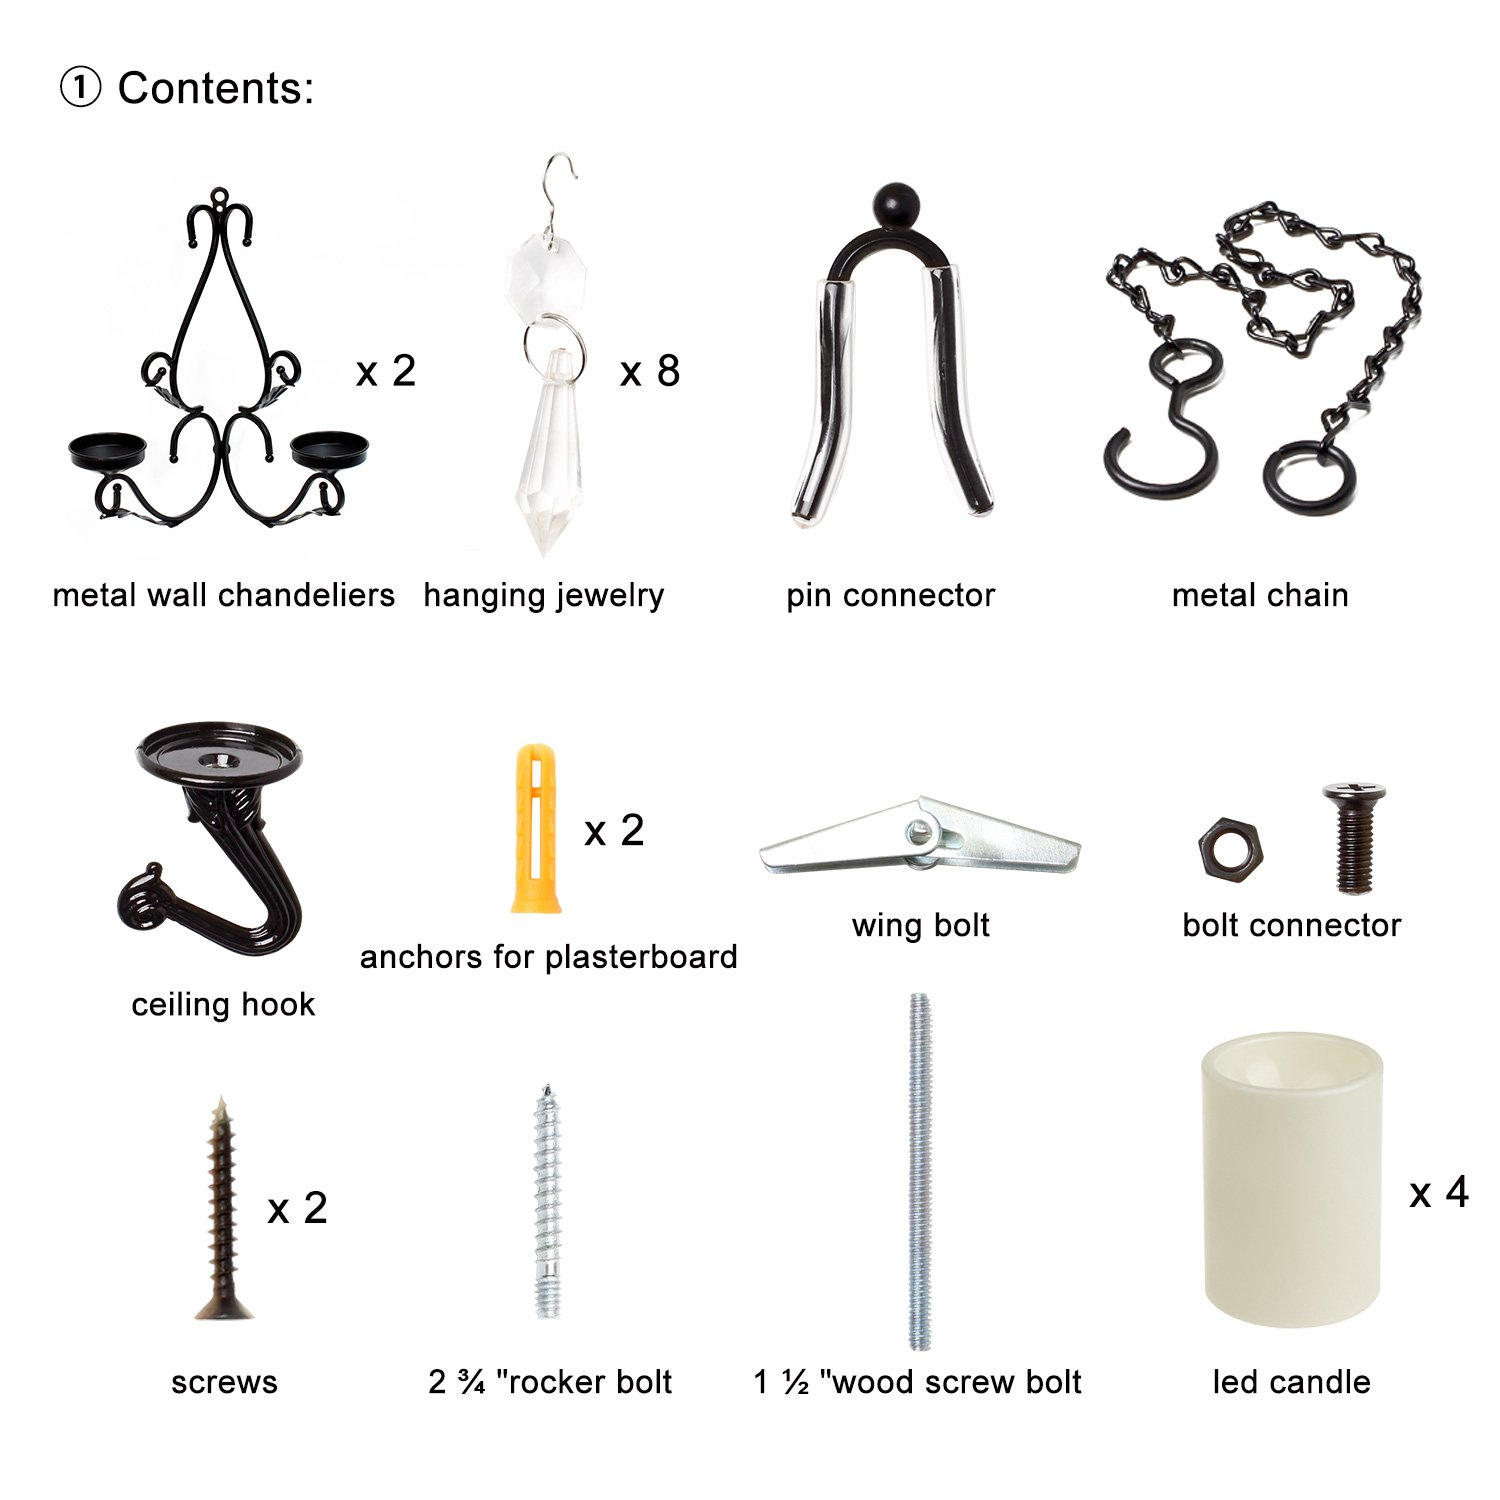 GiveU 3 IN 1 Lighting Chandelier, Metal Wall Sconce Set of 2, Table Centerpiece for Indoor or Outdoor, Chain and Candles Included, Black by GiveU (Image #7)